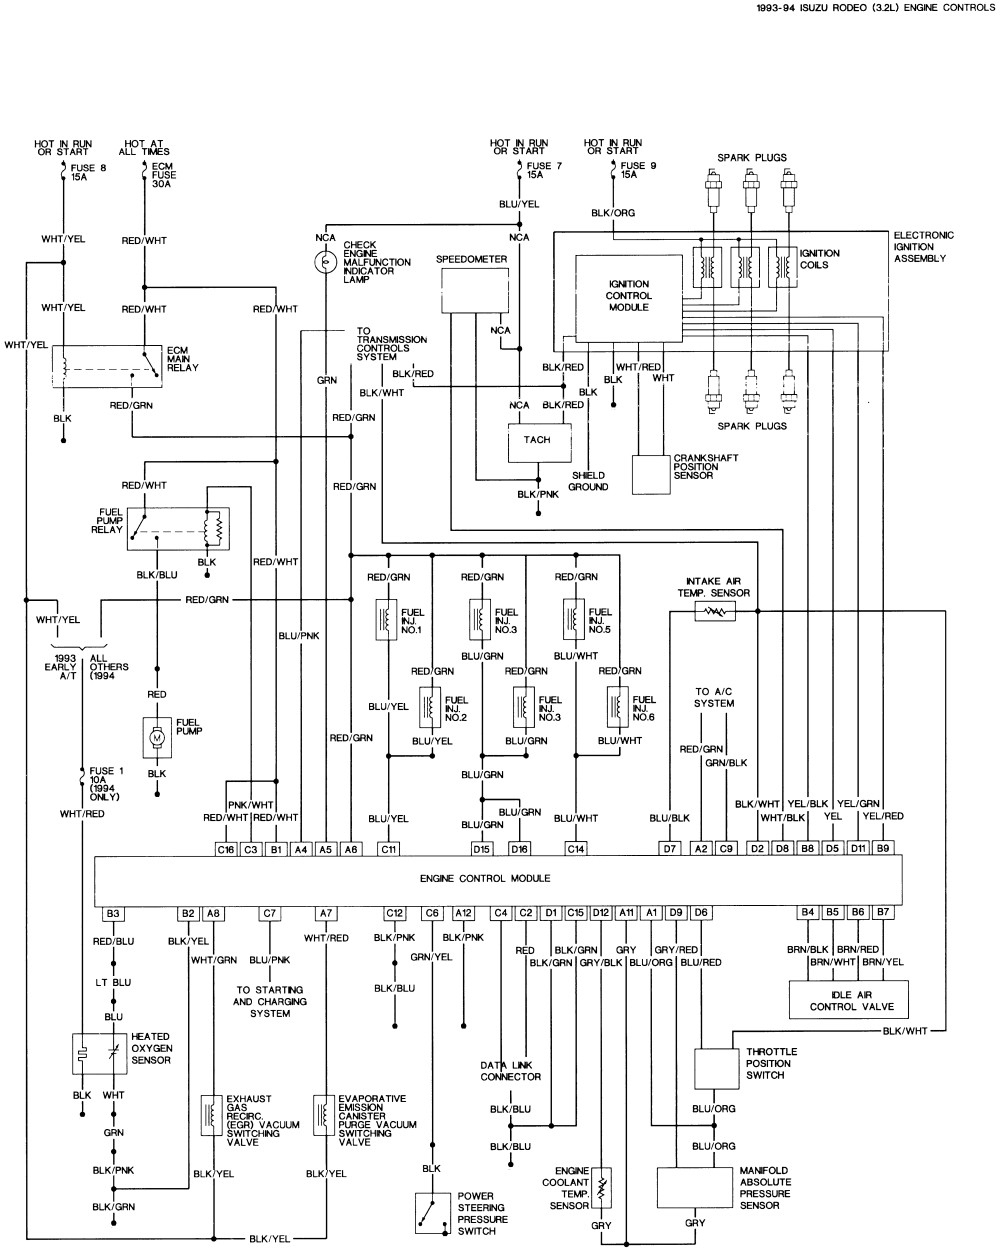 Isuzu Trooper Stereo Wiring Diagram Navigation On Like | Philteg.in - 2006 Isuzu Npr Wiring Diagram